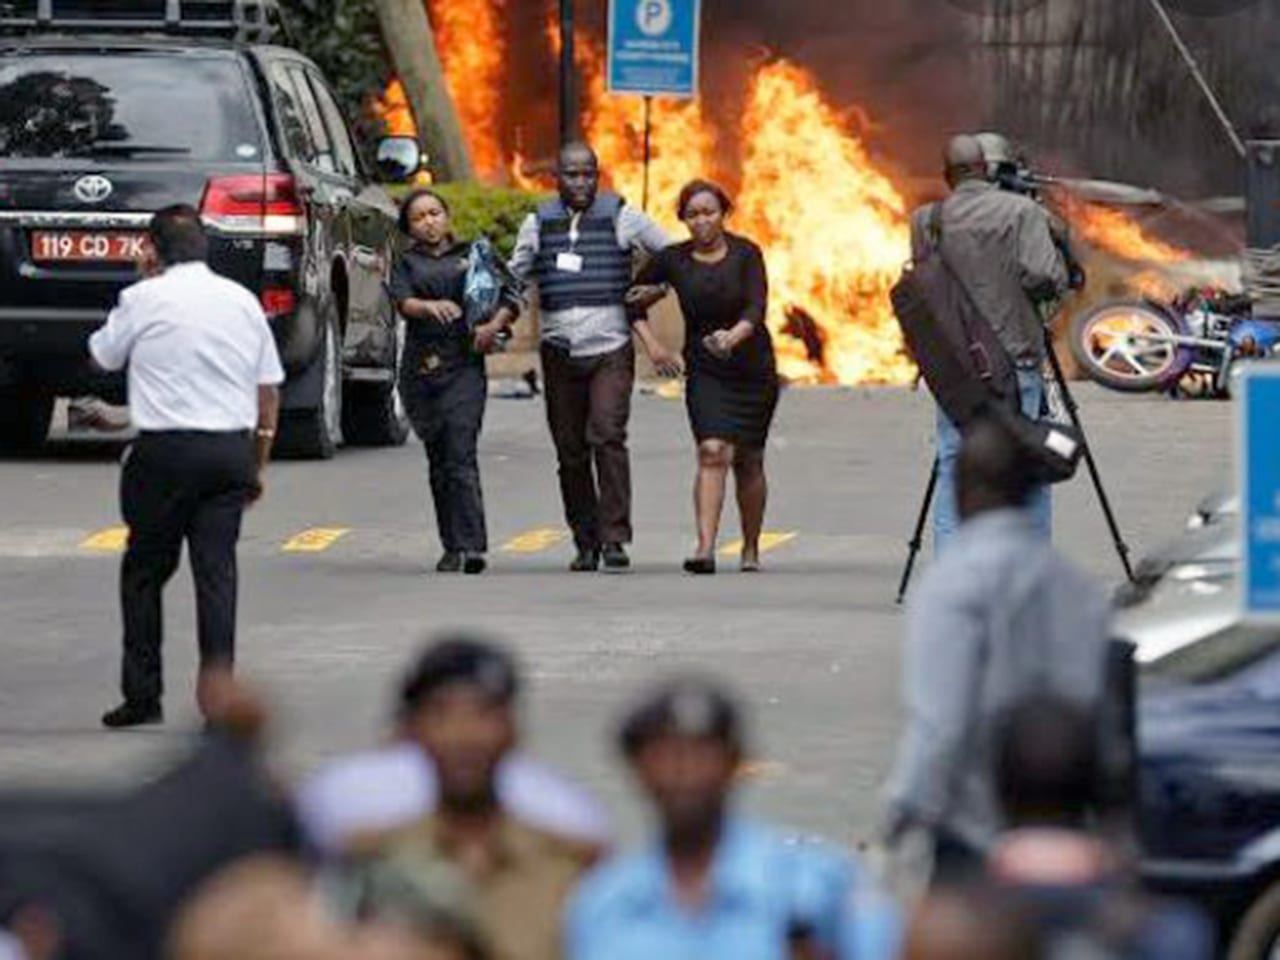 The aftermath of a terror attack in Kenya